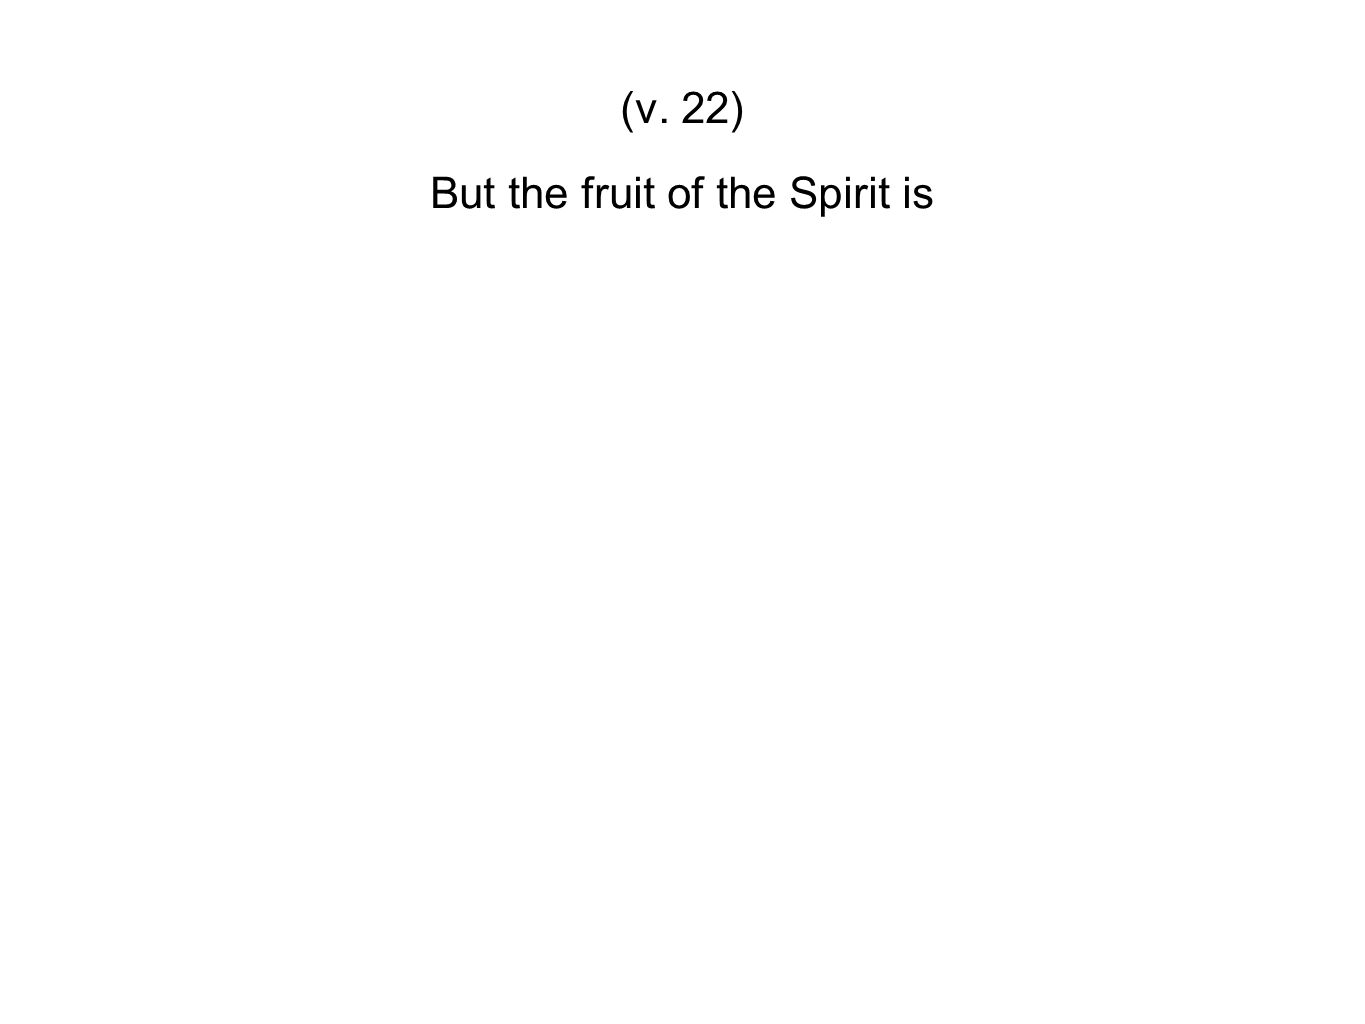 But the fruit of the Spirit is